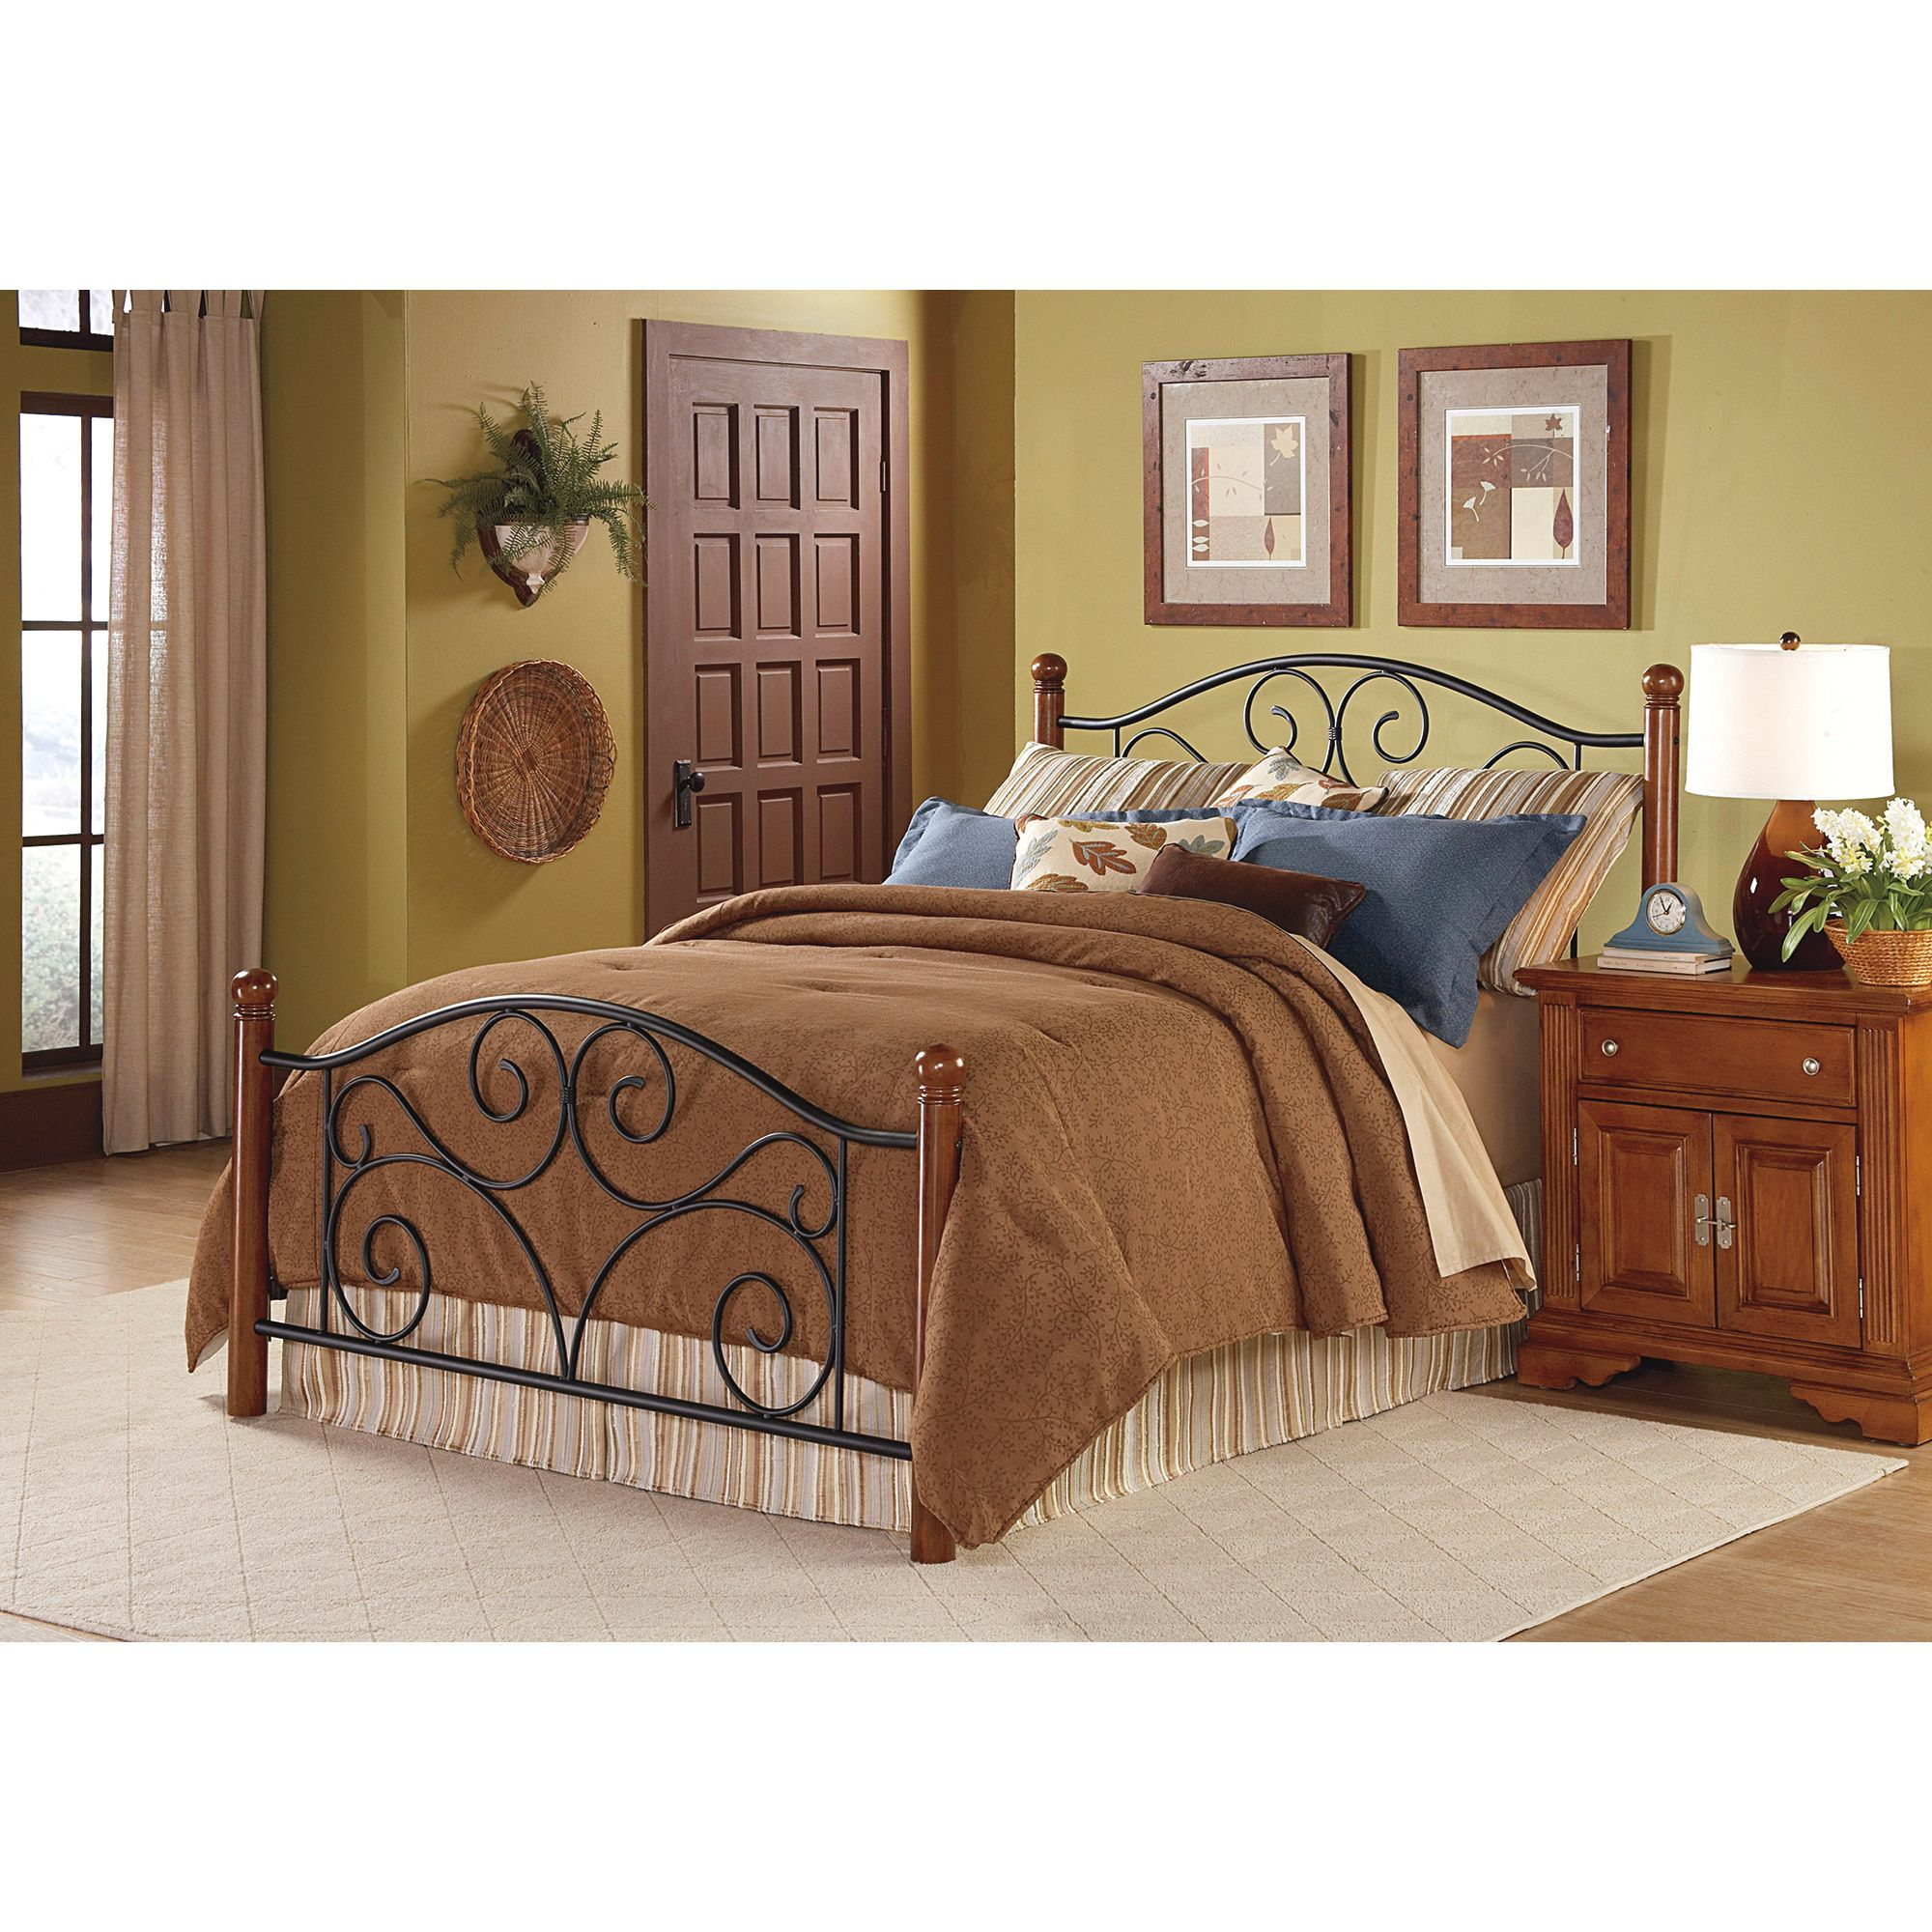 This steel and wood queensize bed will add elegance and